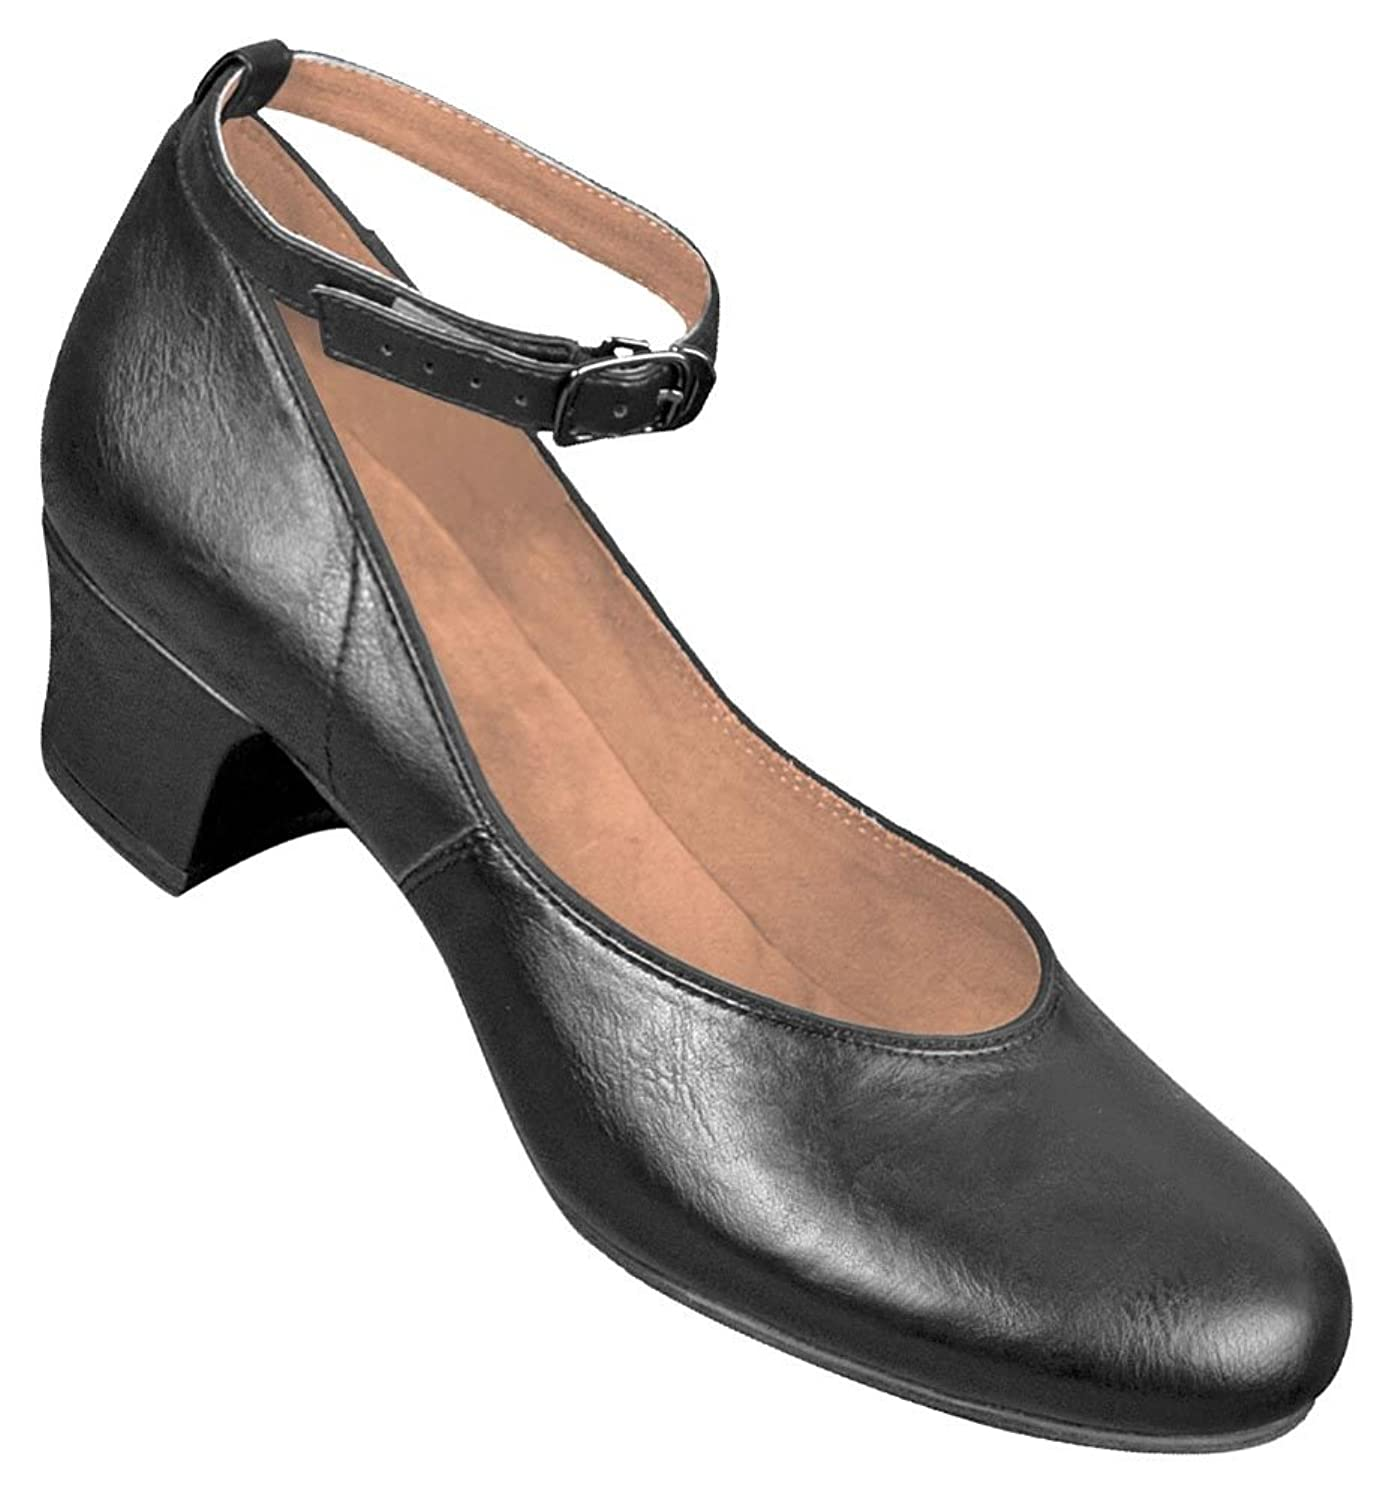 Retro Style Dance Shoes 1950s Mid-Heel Character Shoes $49.95 AT vintagedancer.com